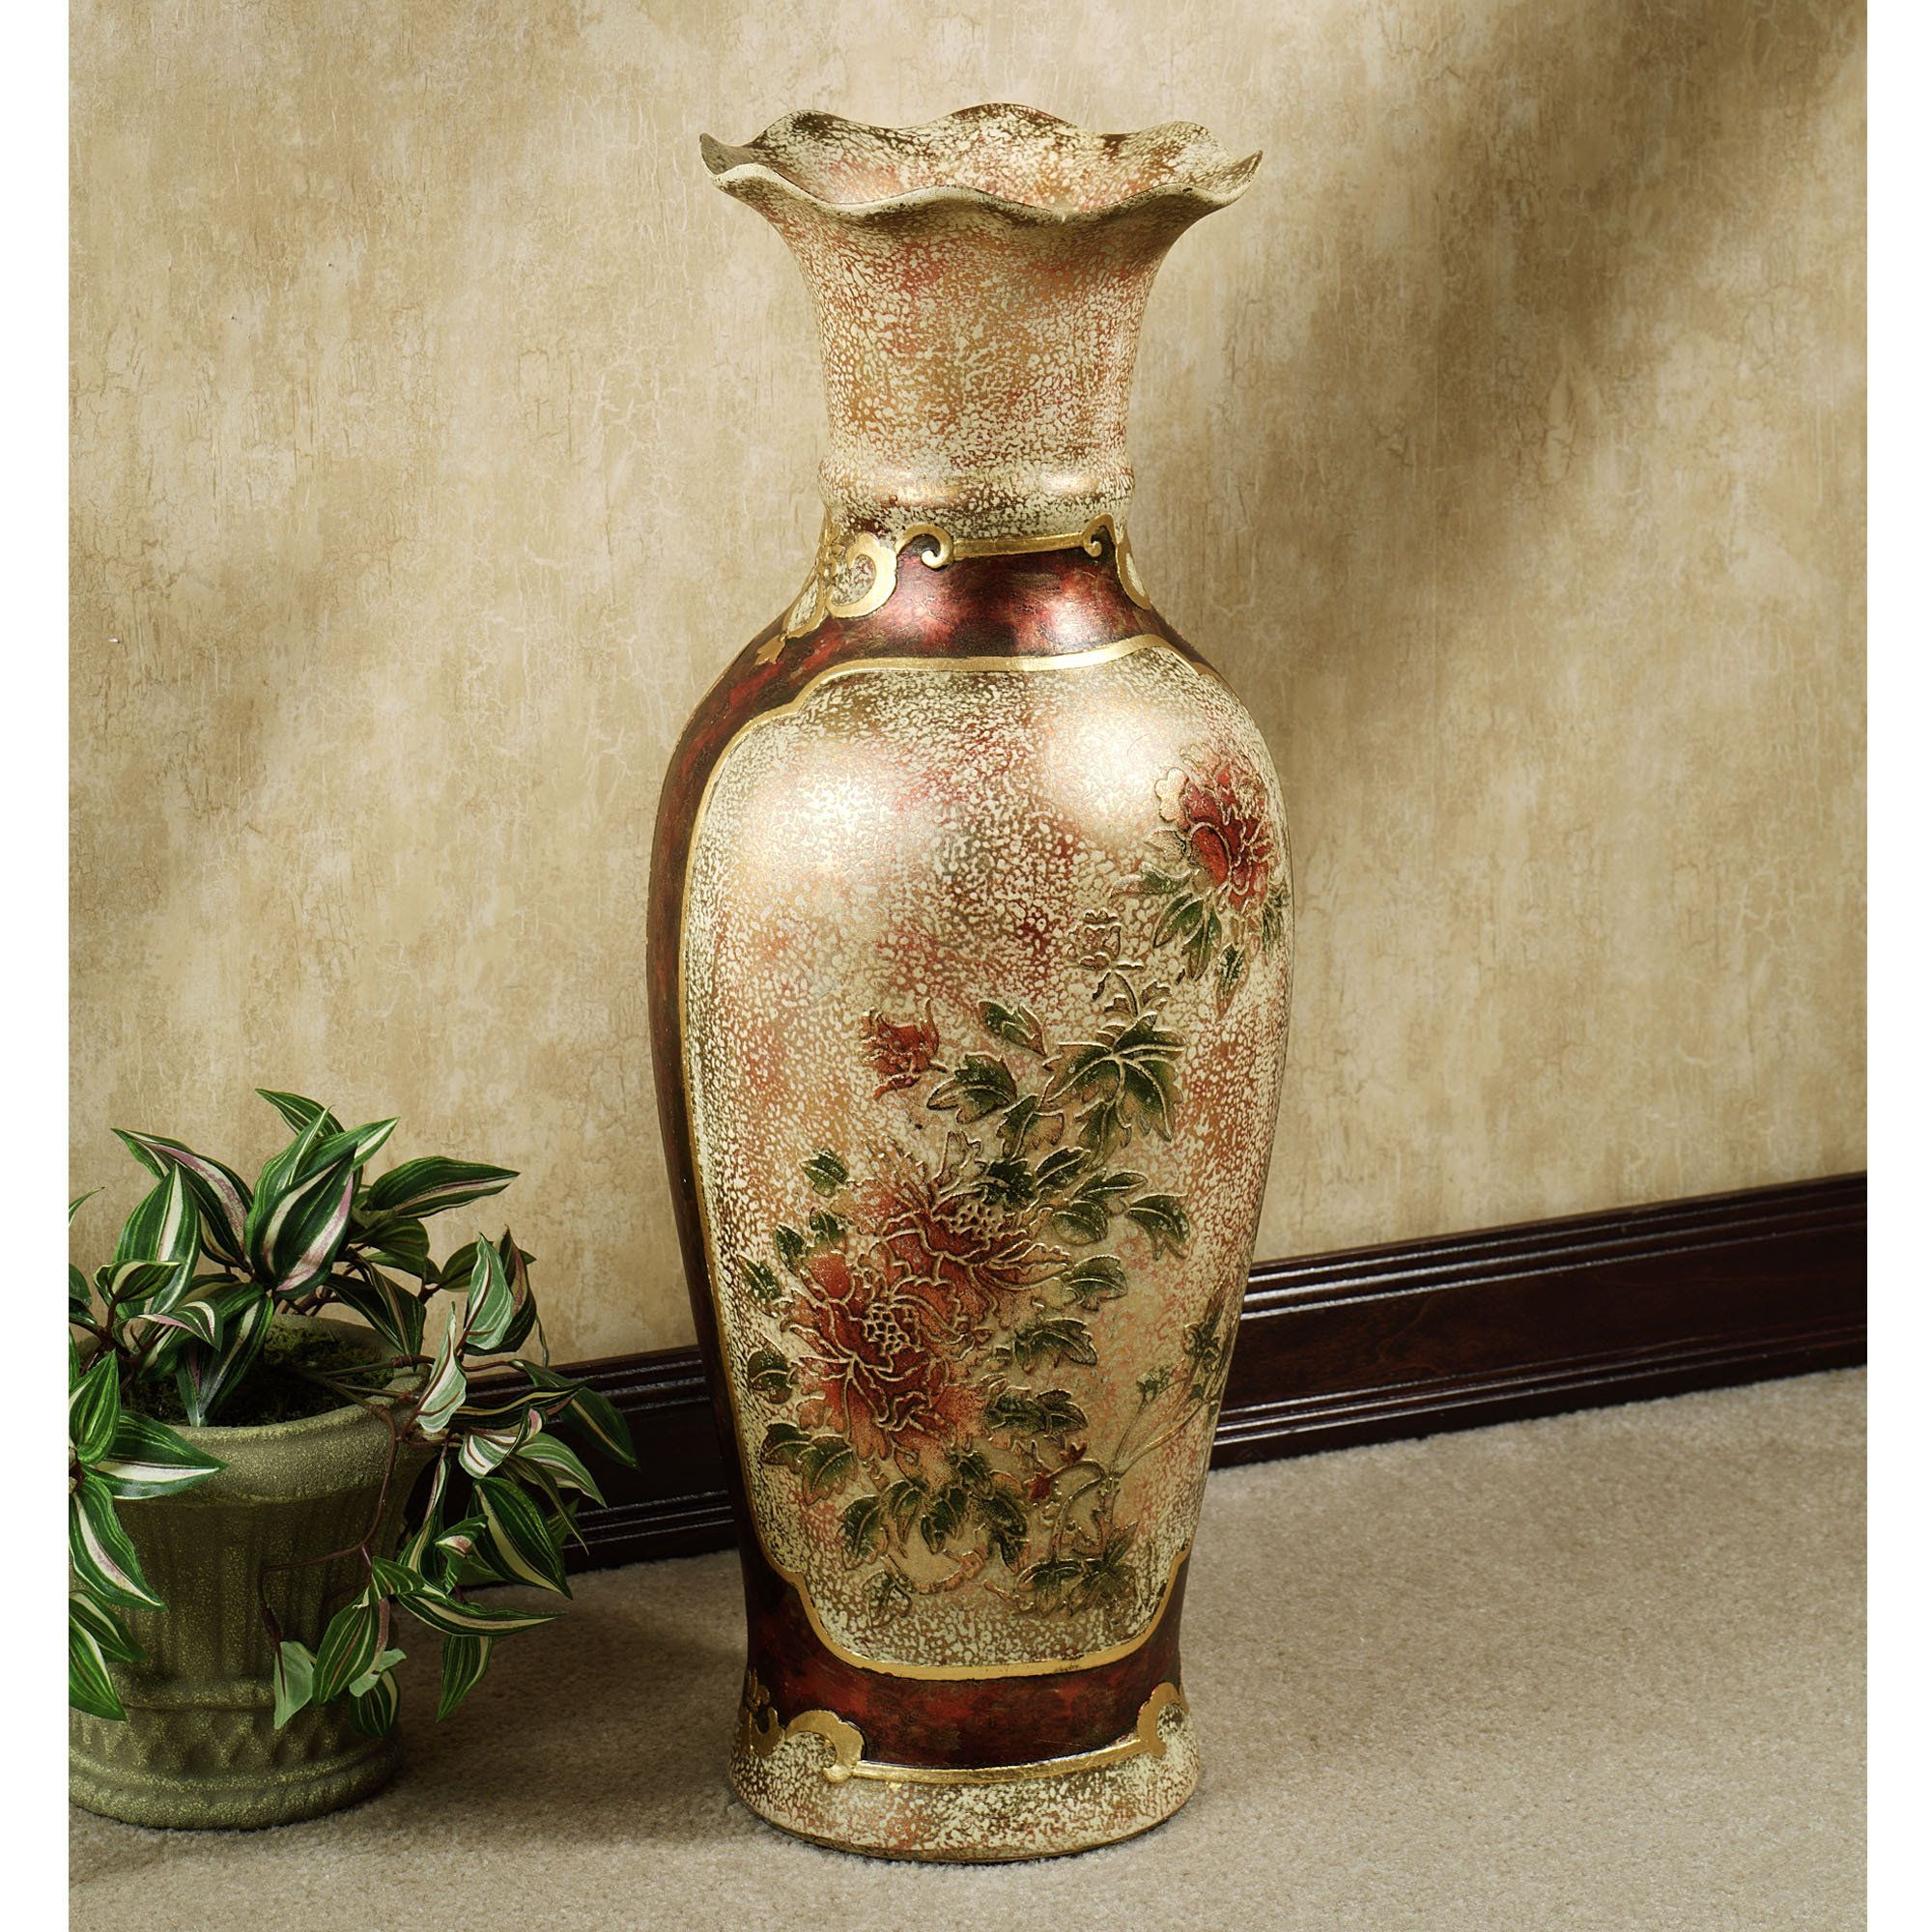 Elysian blooming floor vase urn porcelain and decorating for Floor vase ideas